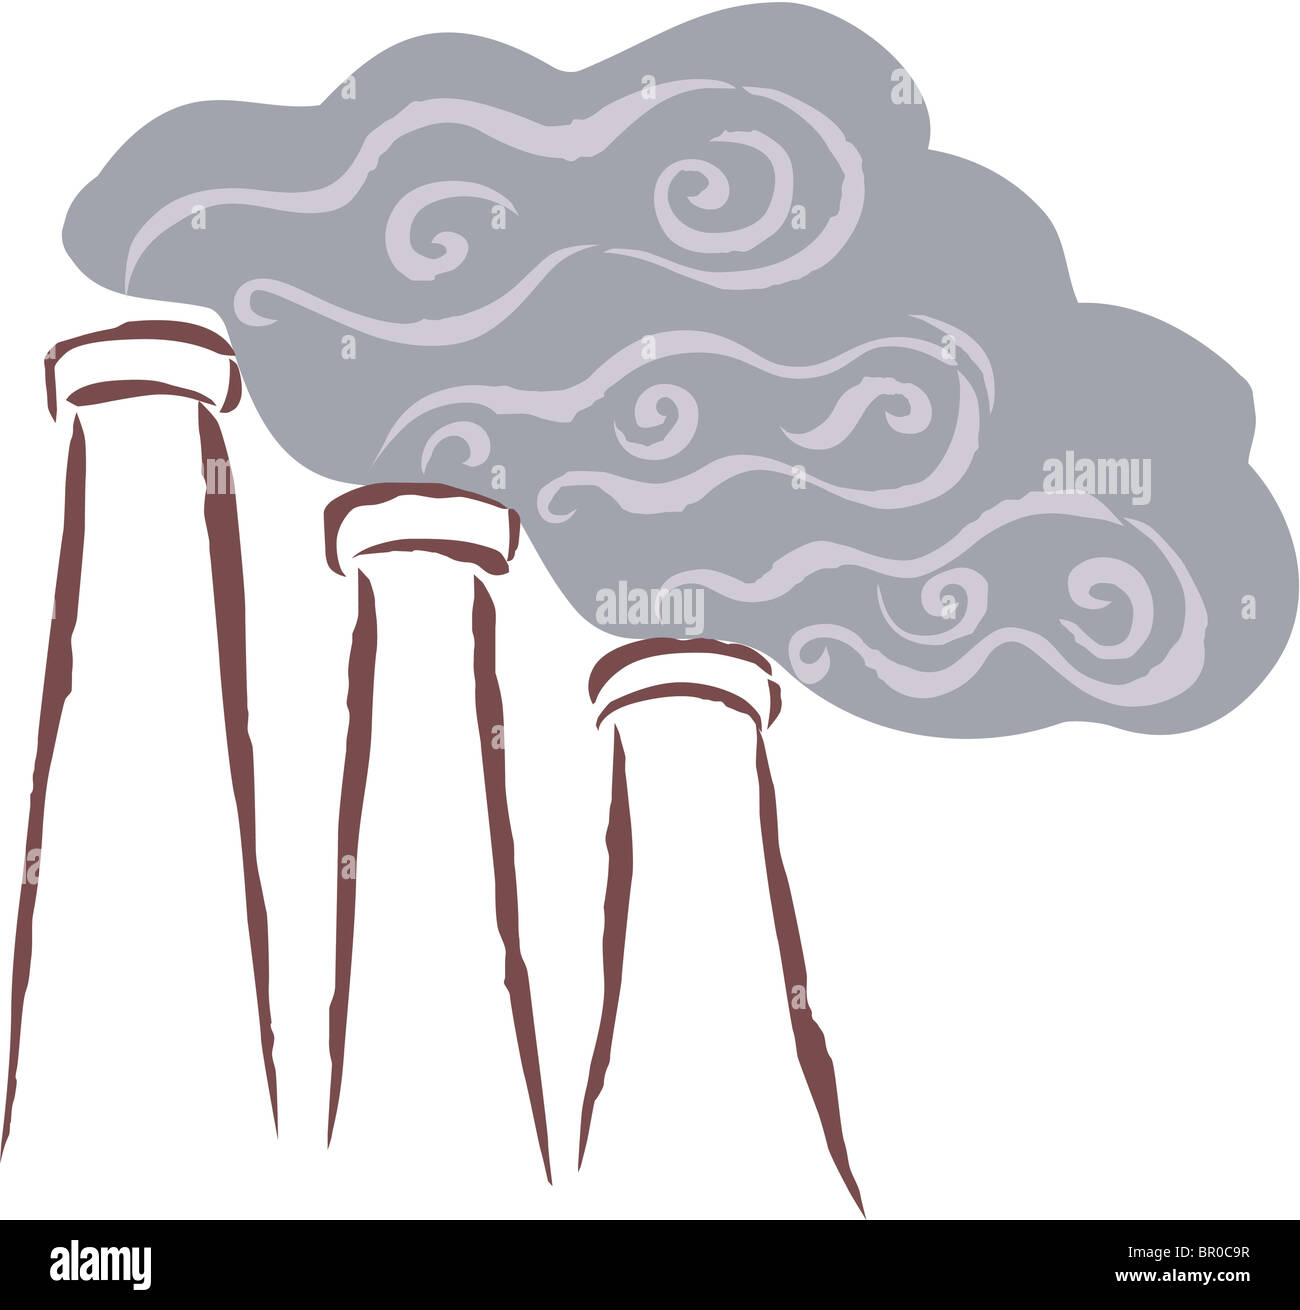 Vents emitting smoke, polluting the surrounding area - Stock Image